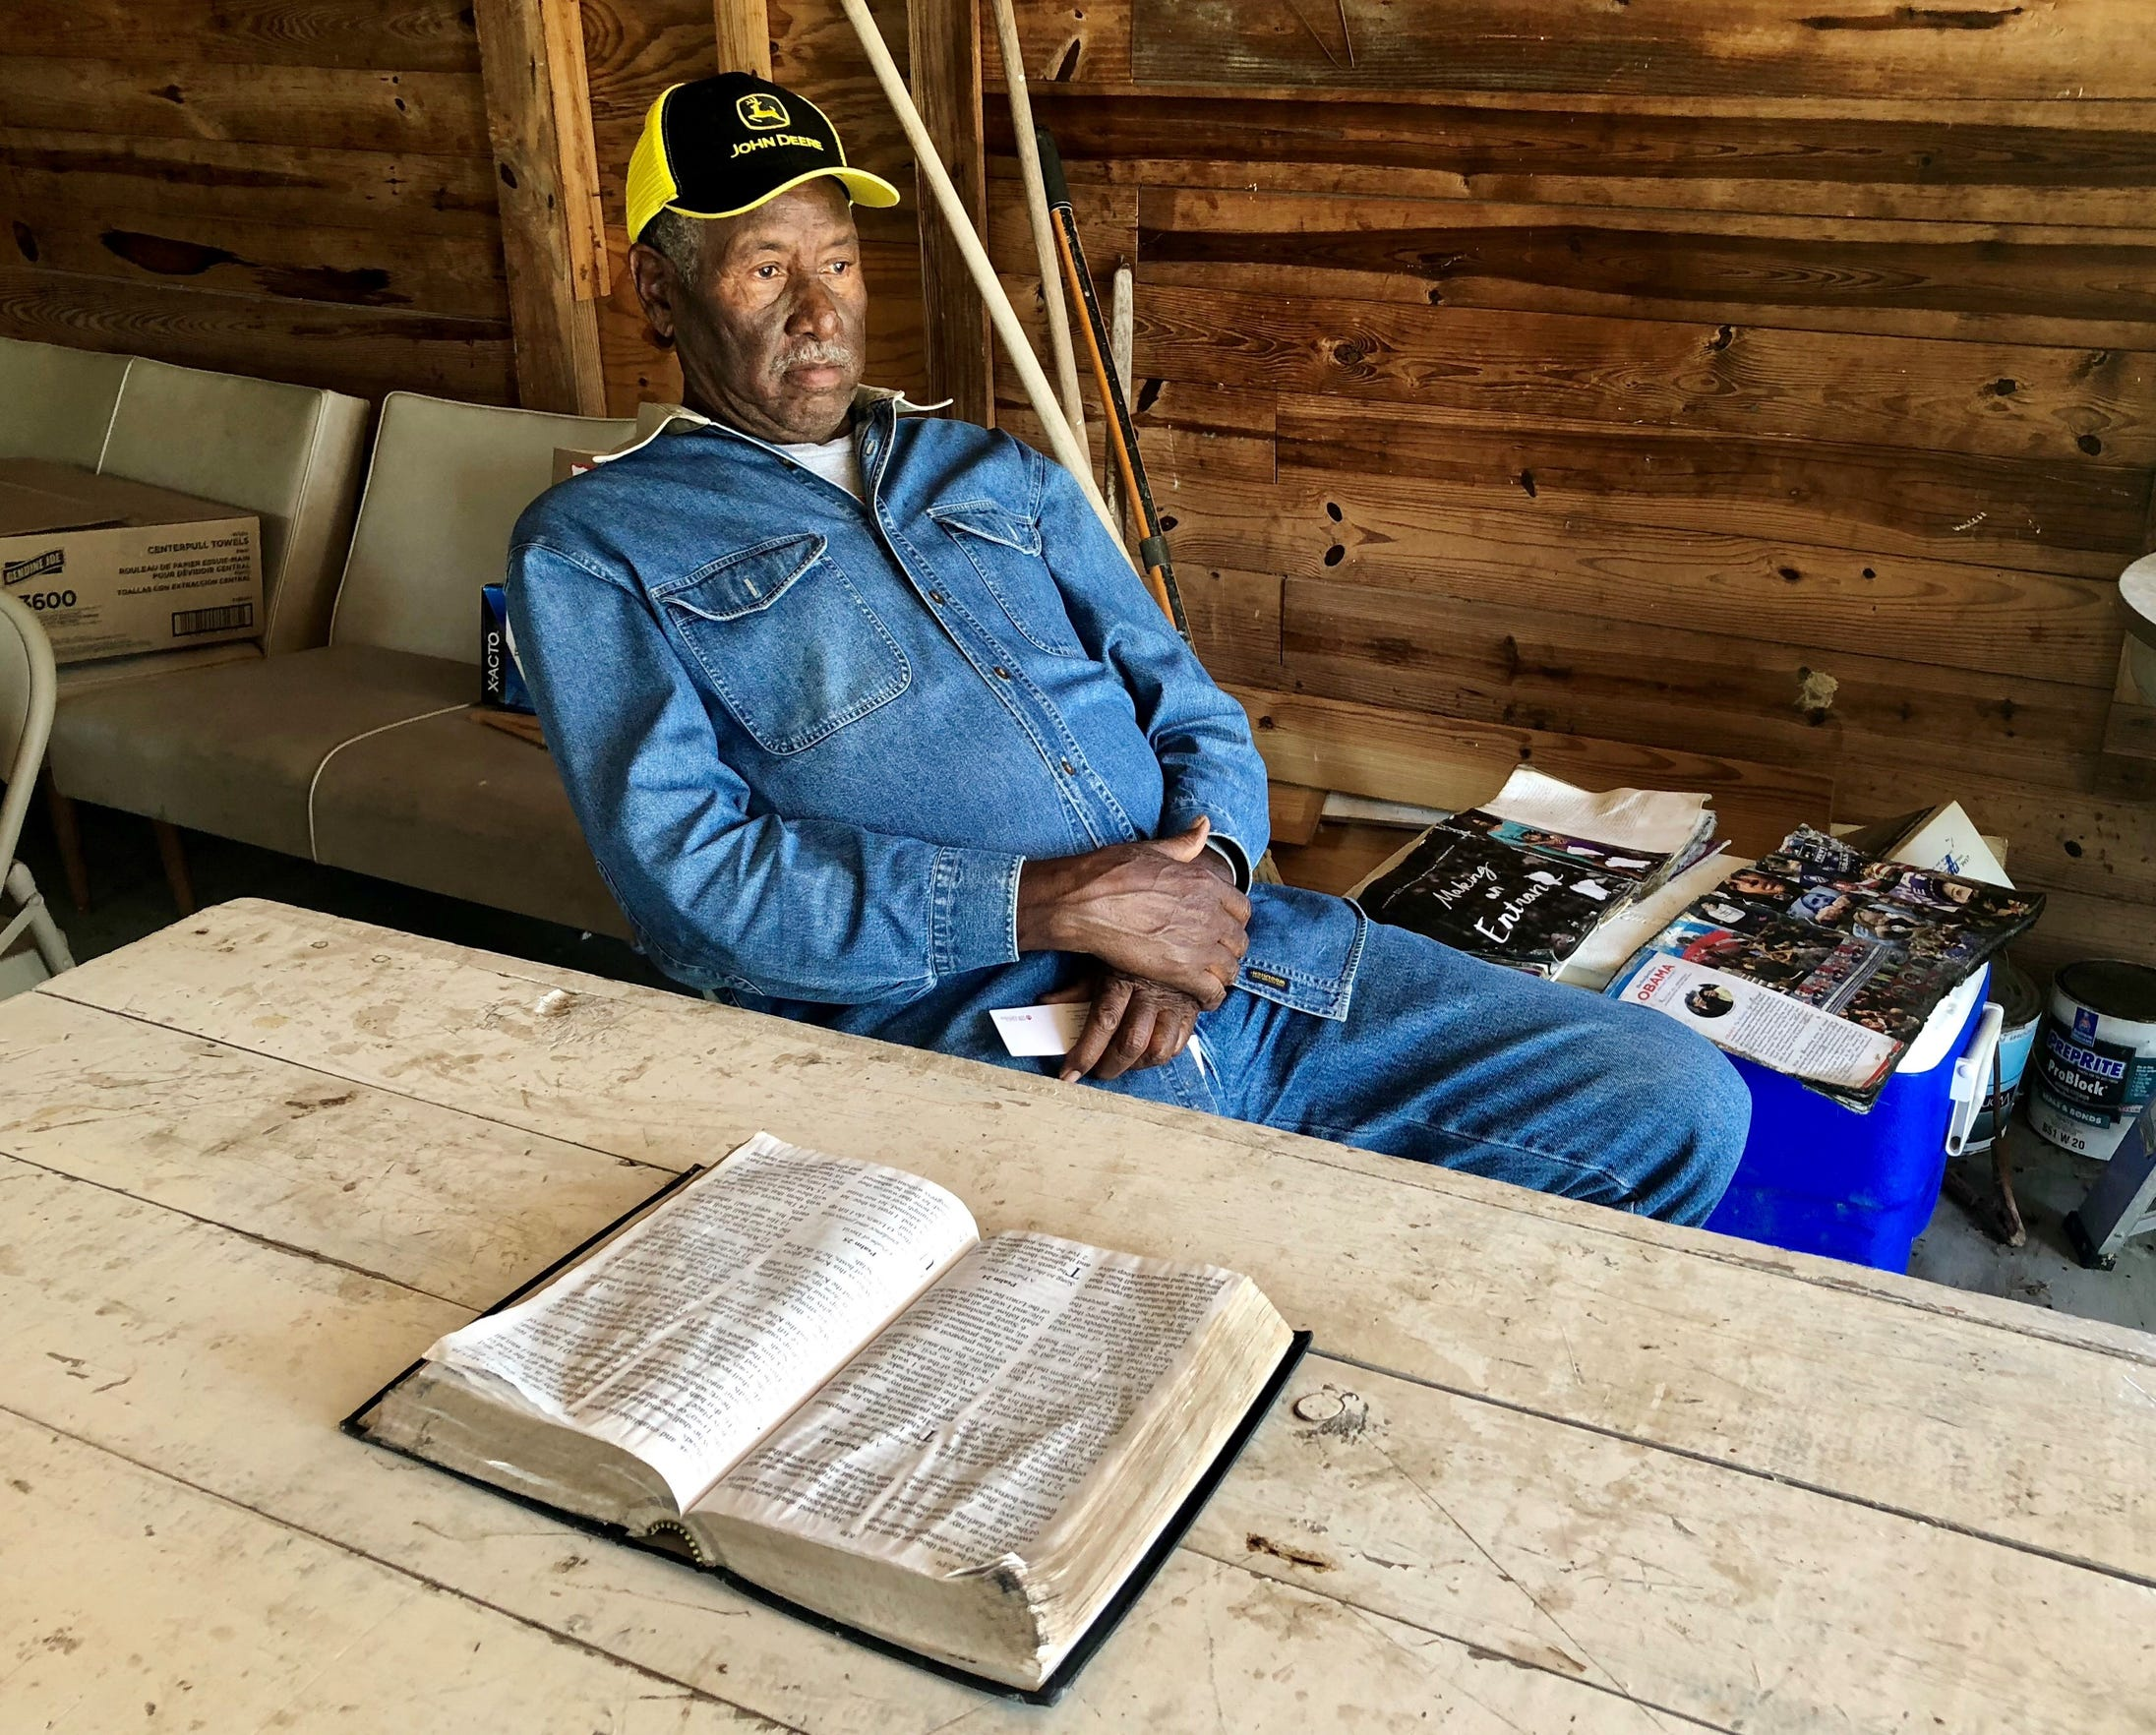 James Espree, a 40-year member of Mt. Pleasant Baptist Church in Opelousas, reads Psalm 23 in his Bible in a shop located next to the burned church building April 15, 2019. It is one of three predominately black Baptist churches in St. Landry Parish to have been burned in a span of 10 days.